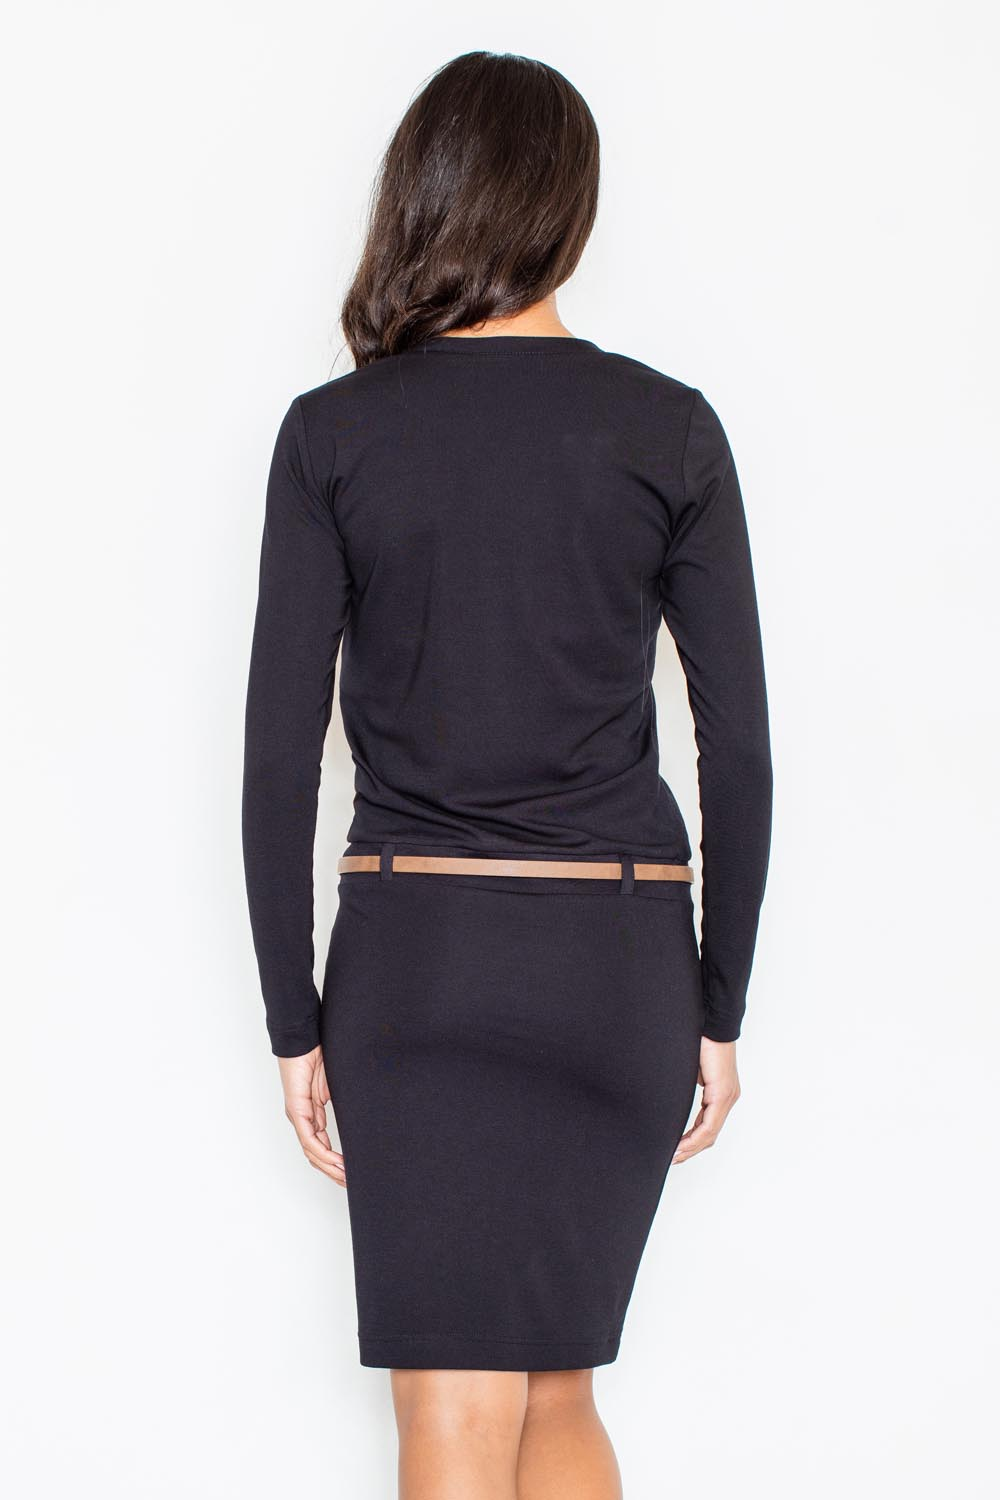 black shift dress with waist belt